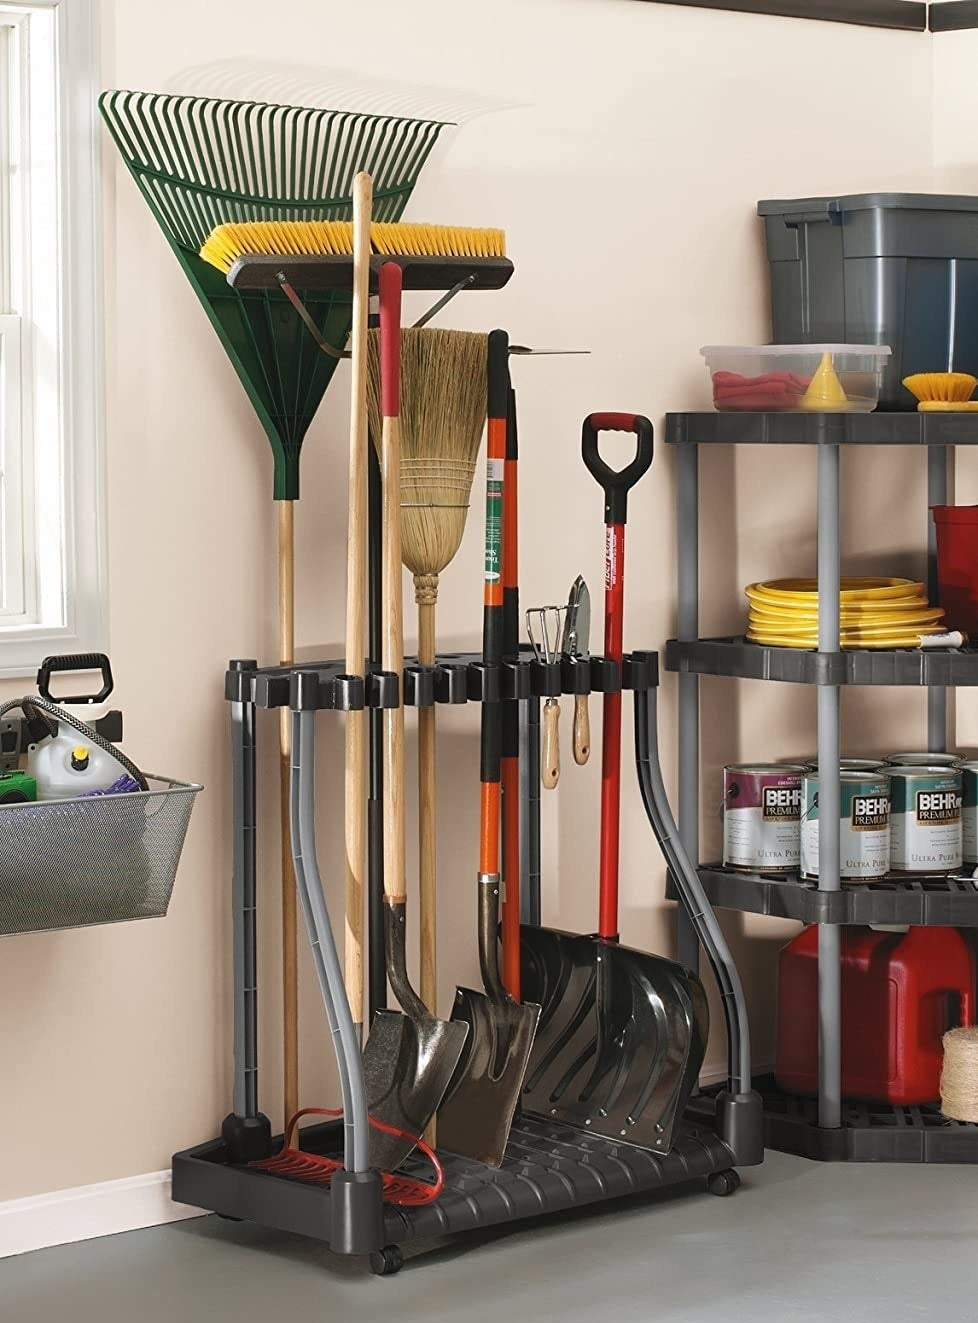 A black and gray plastic tool organizer on caster wheels holding rakes, shovels, and more outdoor tools